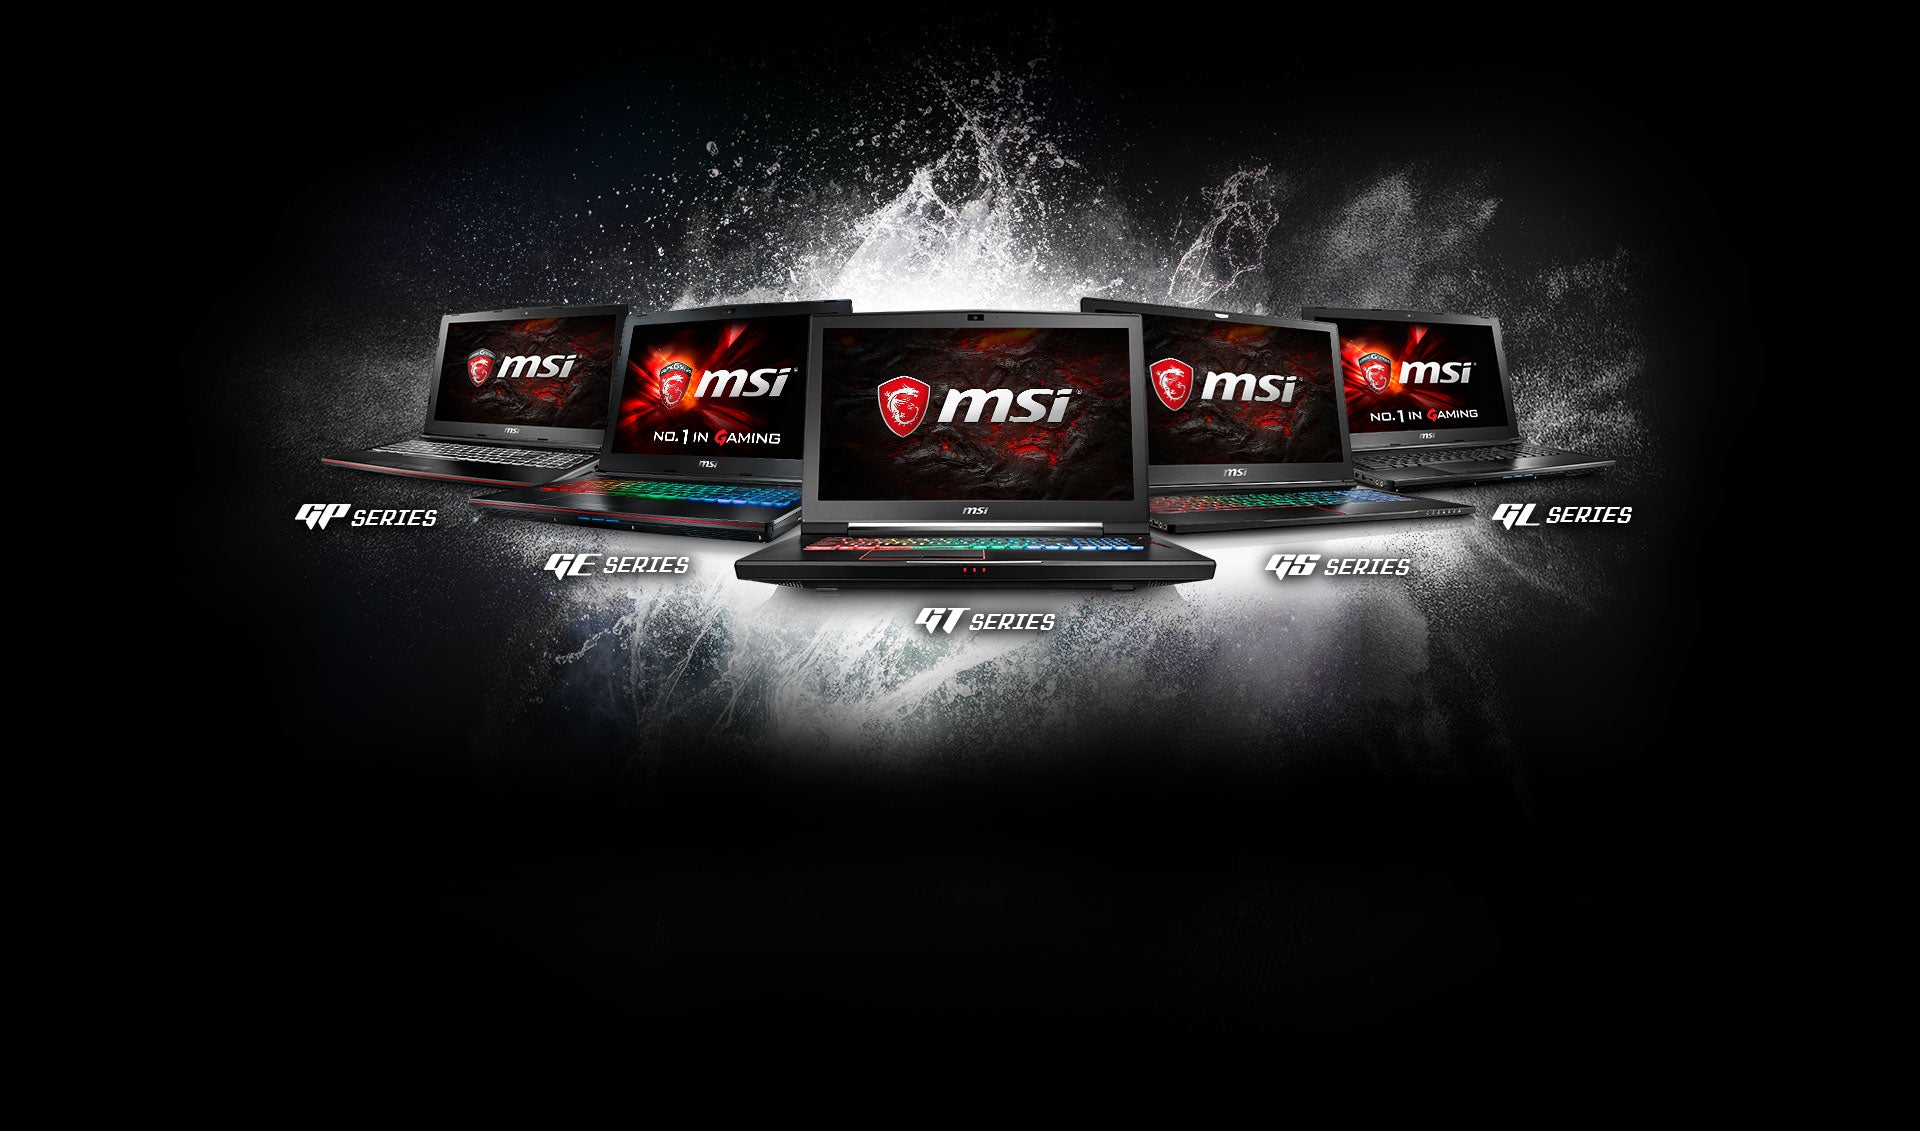 Image of MSI laptops